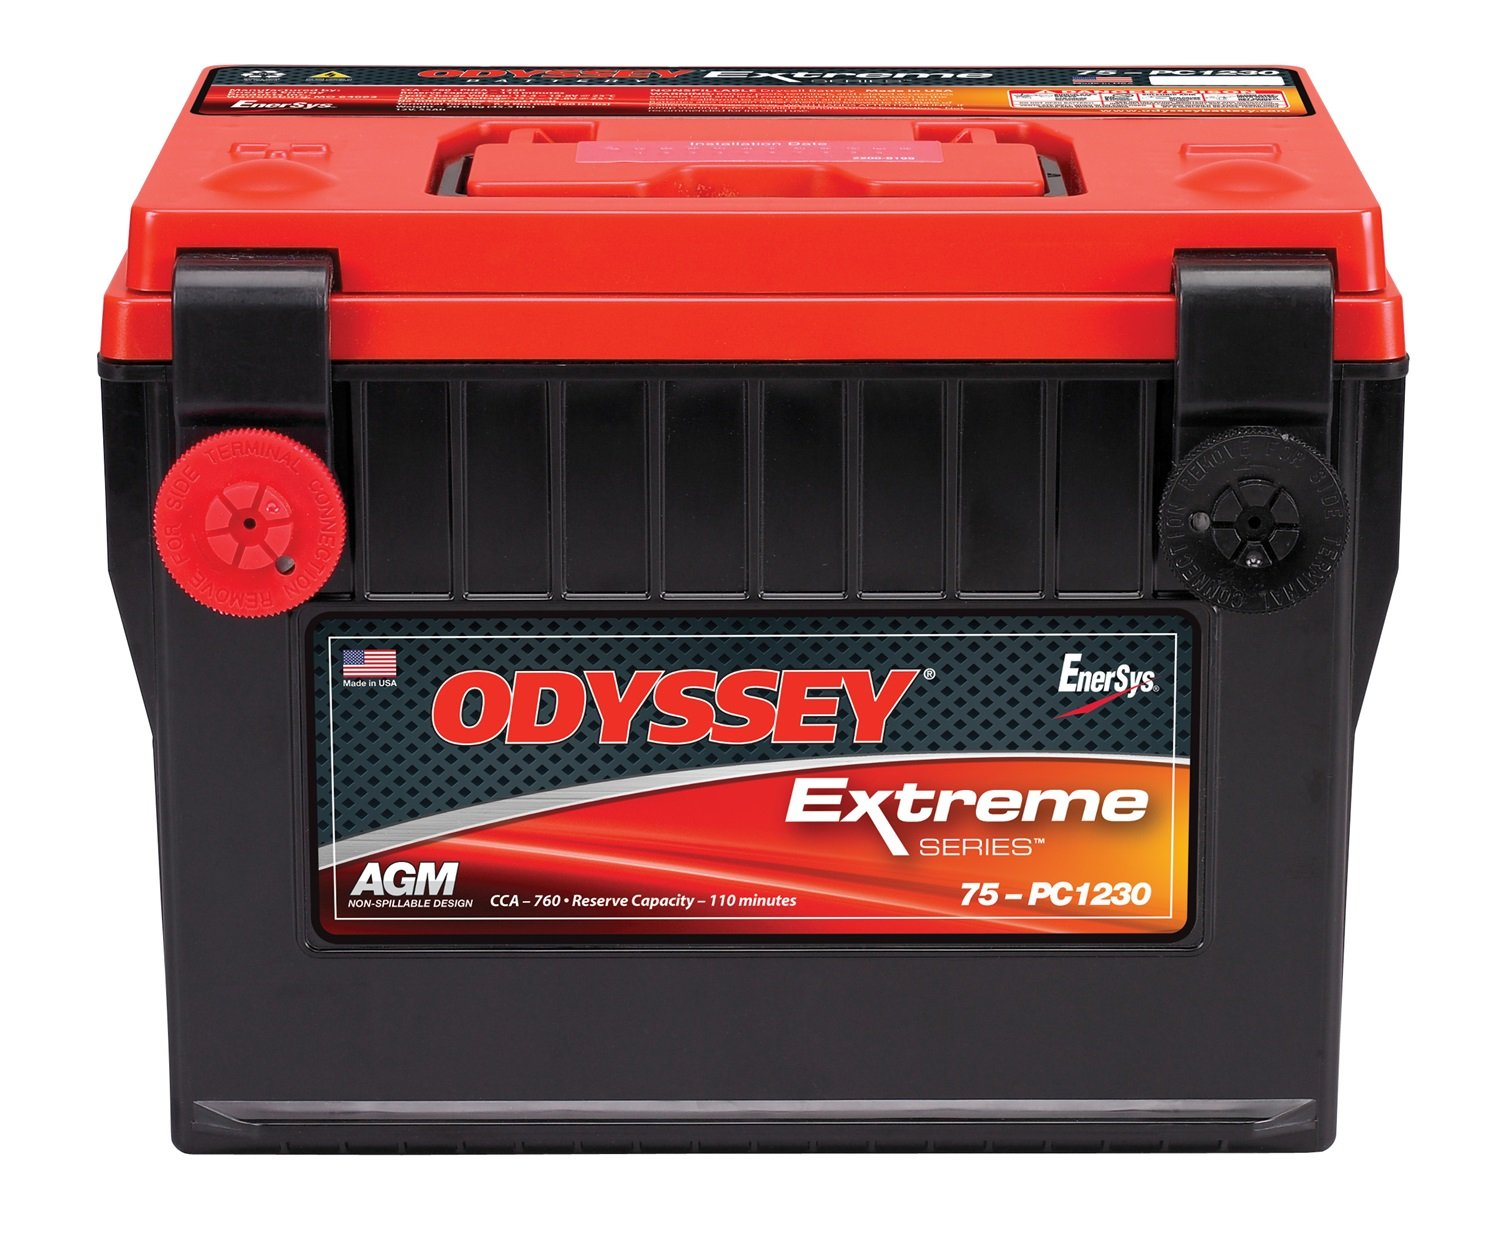 5. ODYSSEY 75-PC1230 Automotive Light Truck Battery